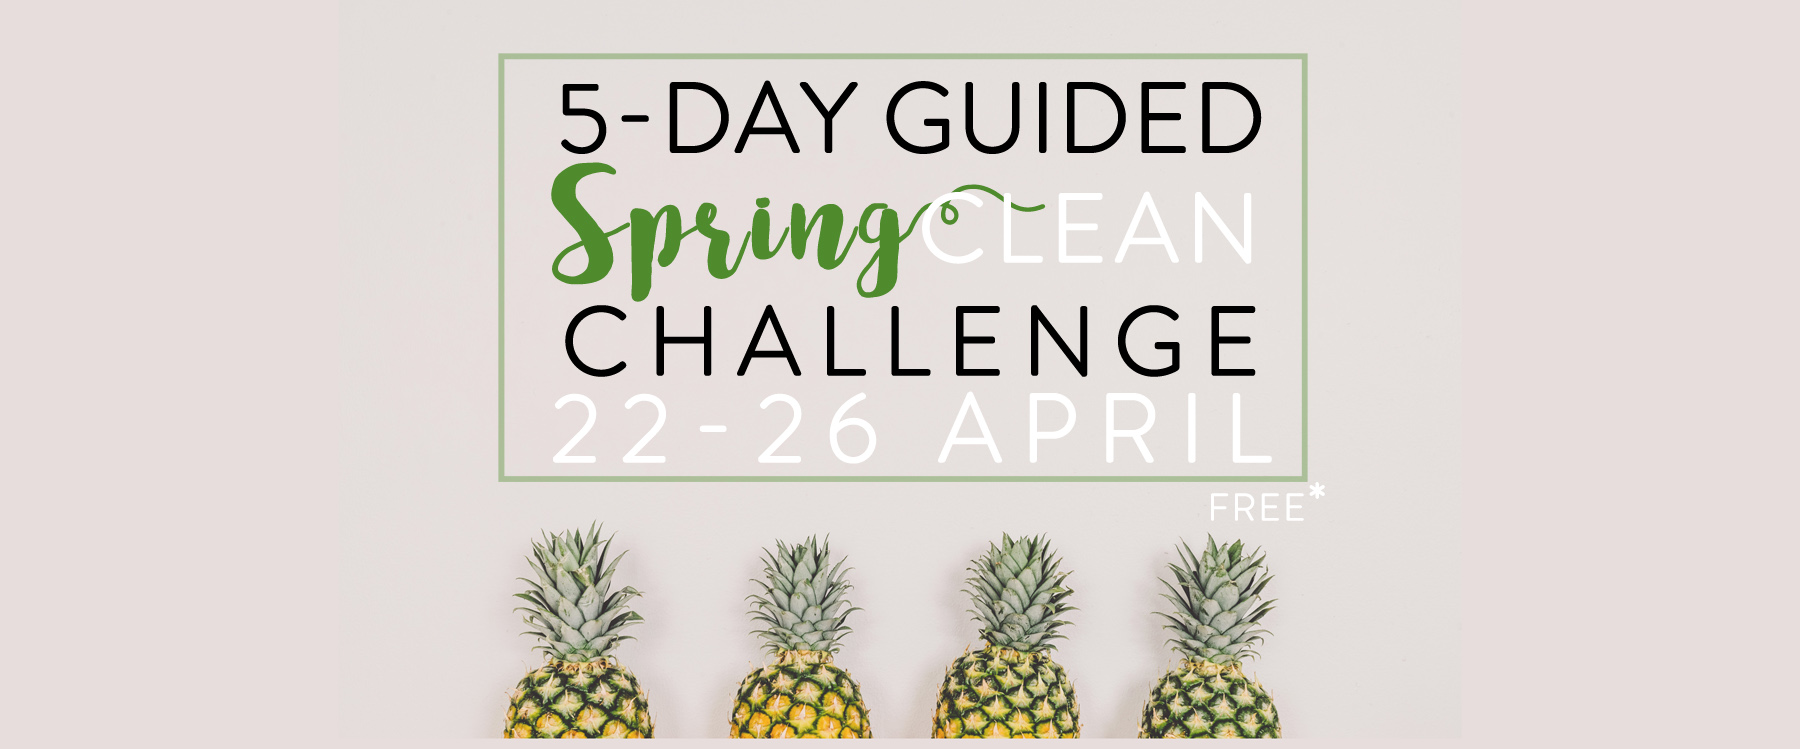 Free 5-Day Spring Clean Challenge